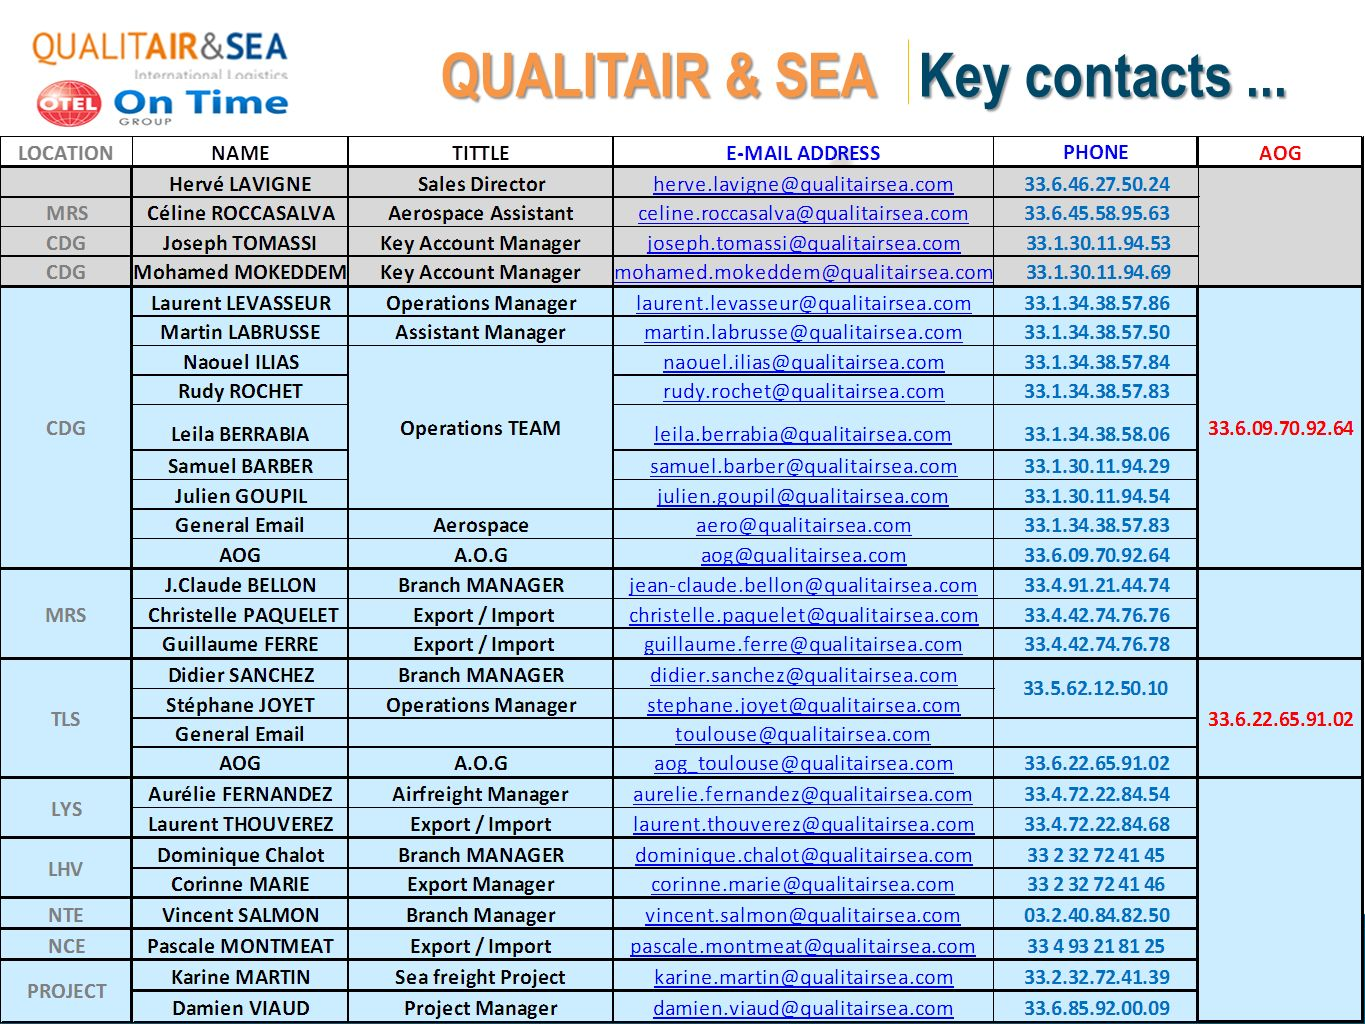 QUALITAIR & SEA Key contacts ...